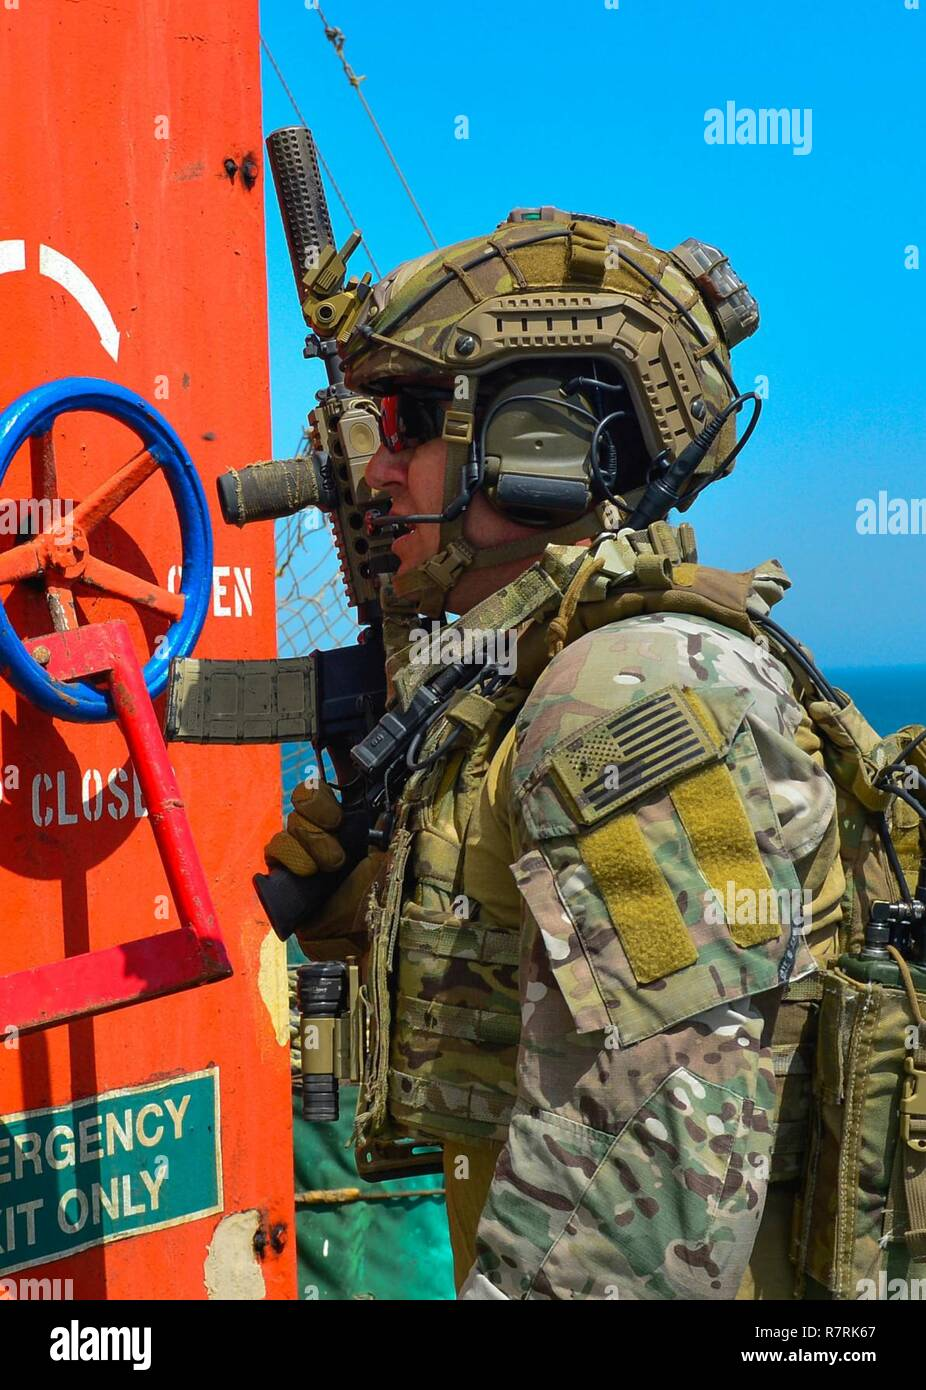 KUWAIT - Elite military special operations forces from the Gulf Cooperation Council,  and the U.S. conducted a simulated rapid response to the hijacking of the motor tanker, or oil tanker, the Hadiyah, April 3, in Kuwait territorial waters.   Special forces teams from the GCC, and U.S. Naval Special Warfare and rigid-hull inflatable boat teams simulated an air and sea-borne rapid insertion, search and seizure of the occupied tanker and its hijackers, and the safe release of the tanker crewmen.  The raid was a cumulative joint exercise that tested the participants' tactical skills and abilities Stock Photo